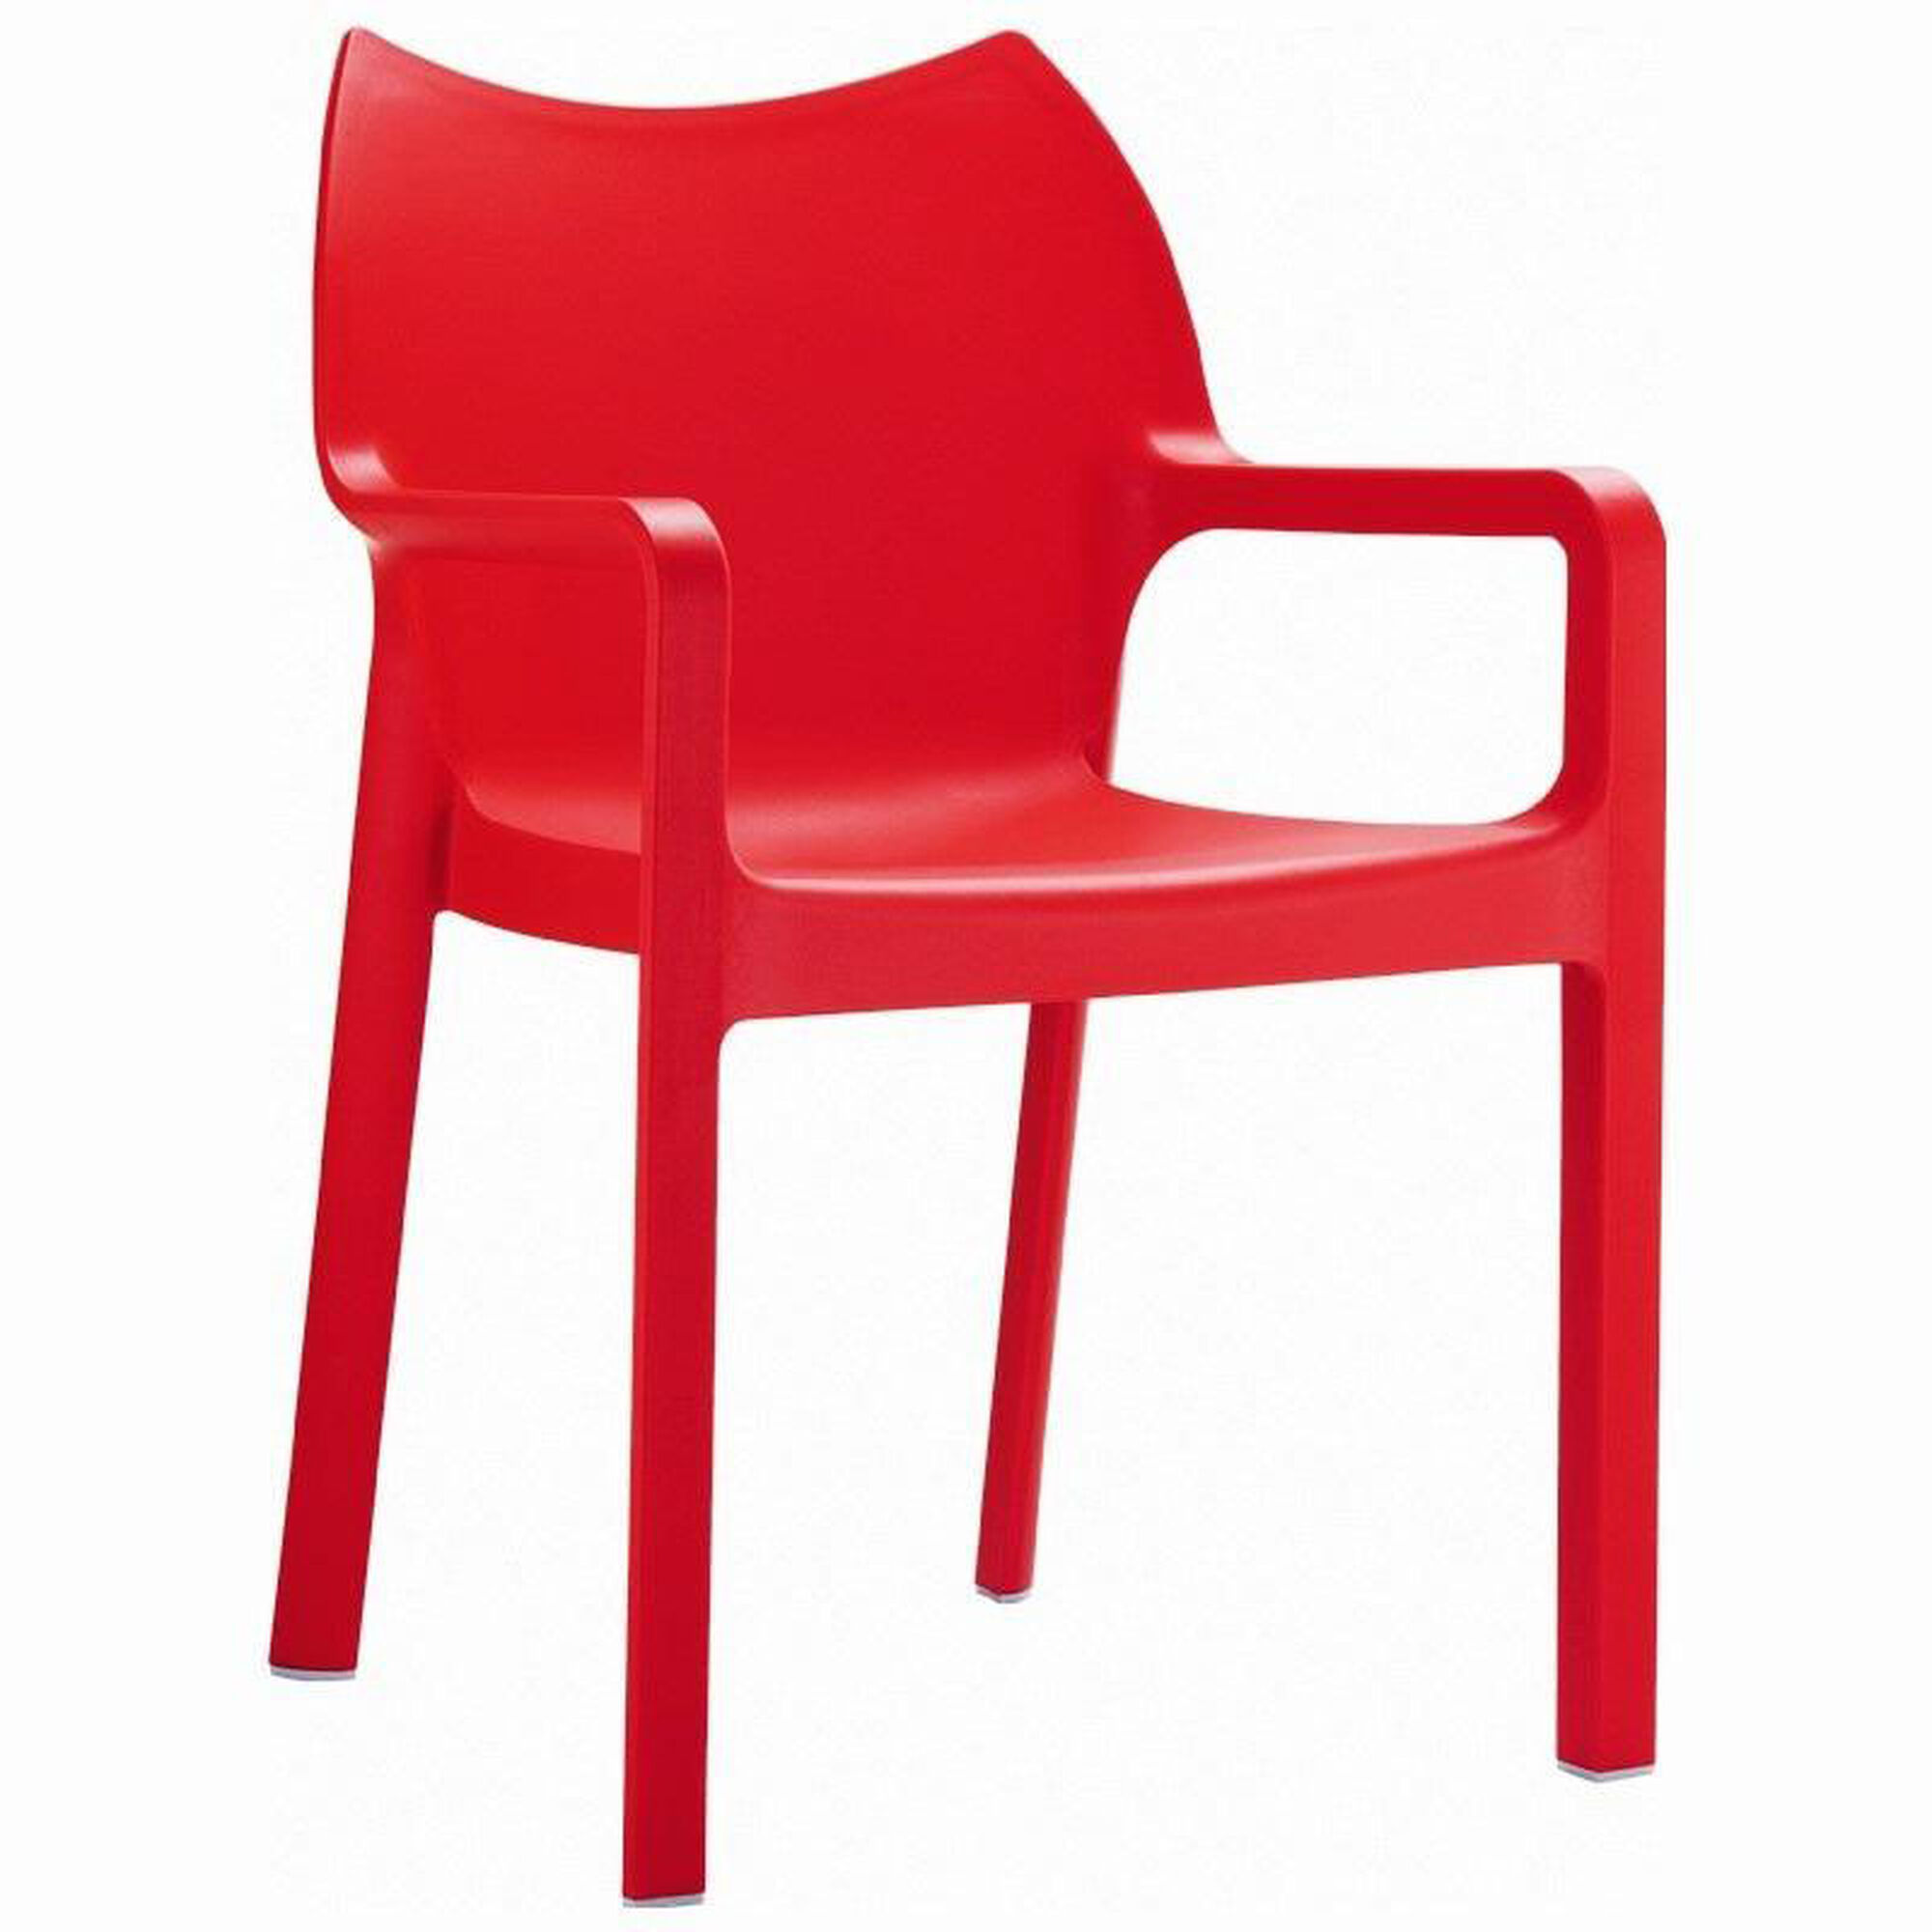 Marvelous Diva Outdoor Resin Stackable Dining Arm Chair Red Ncnpc Chair Design For Home Ncnpcorg